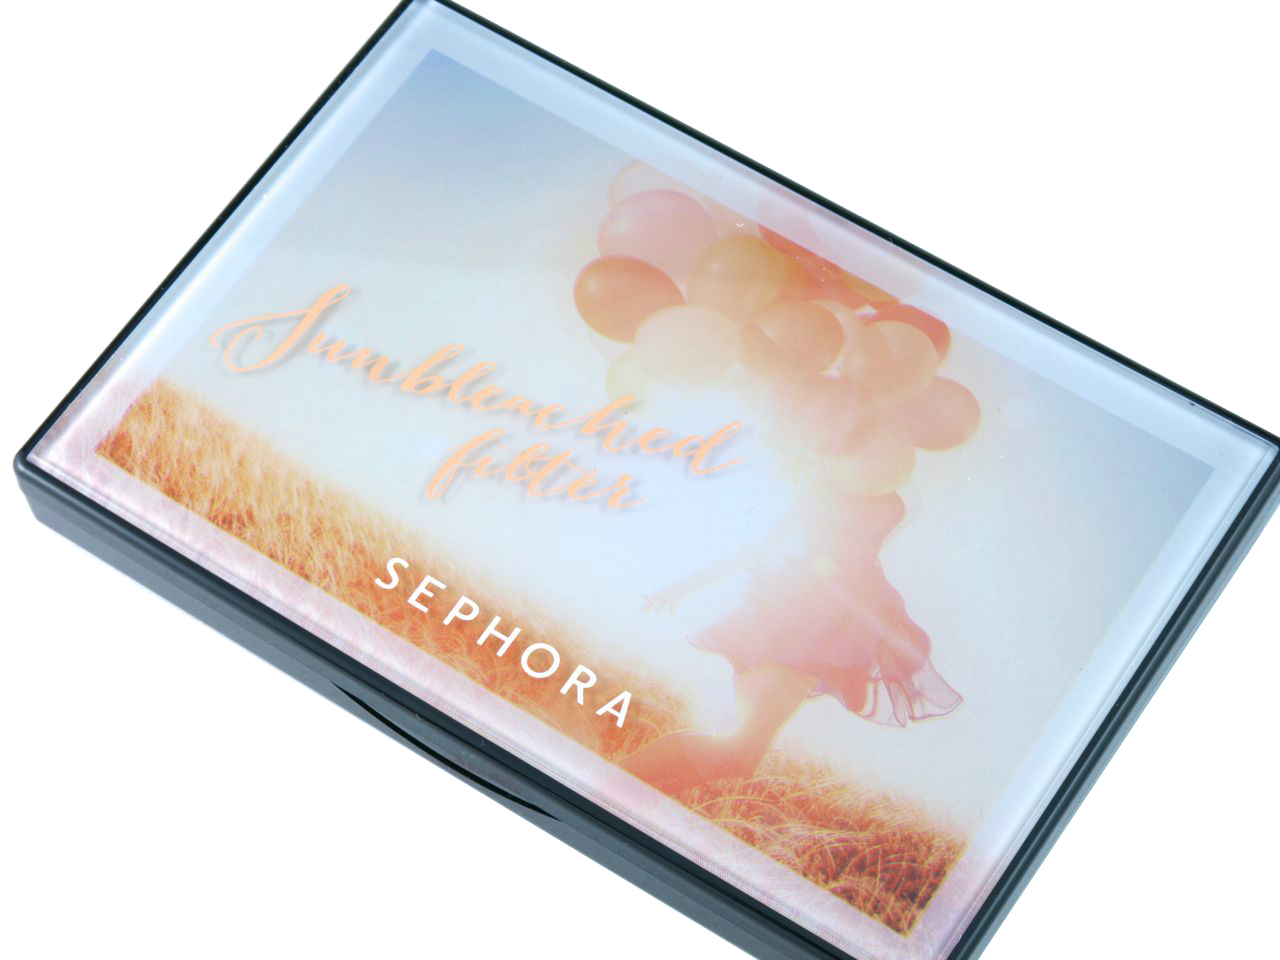 Sephora Colorful Eye Shadow Photo Filter Palette: Review and Swatches